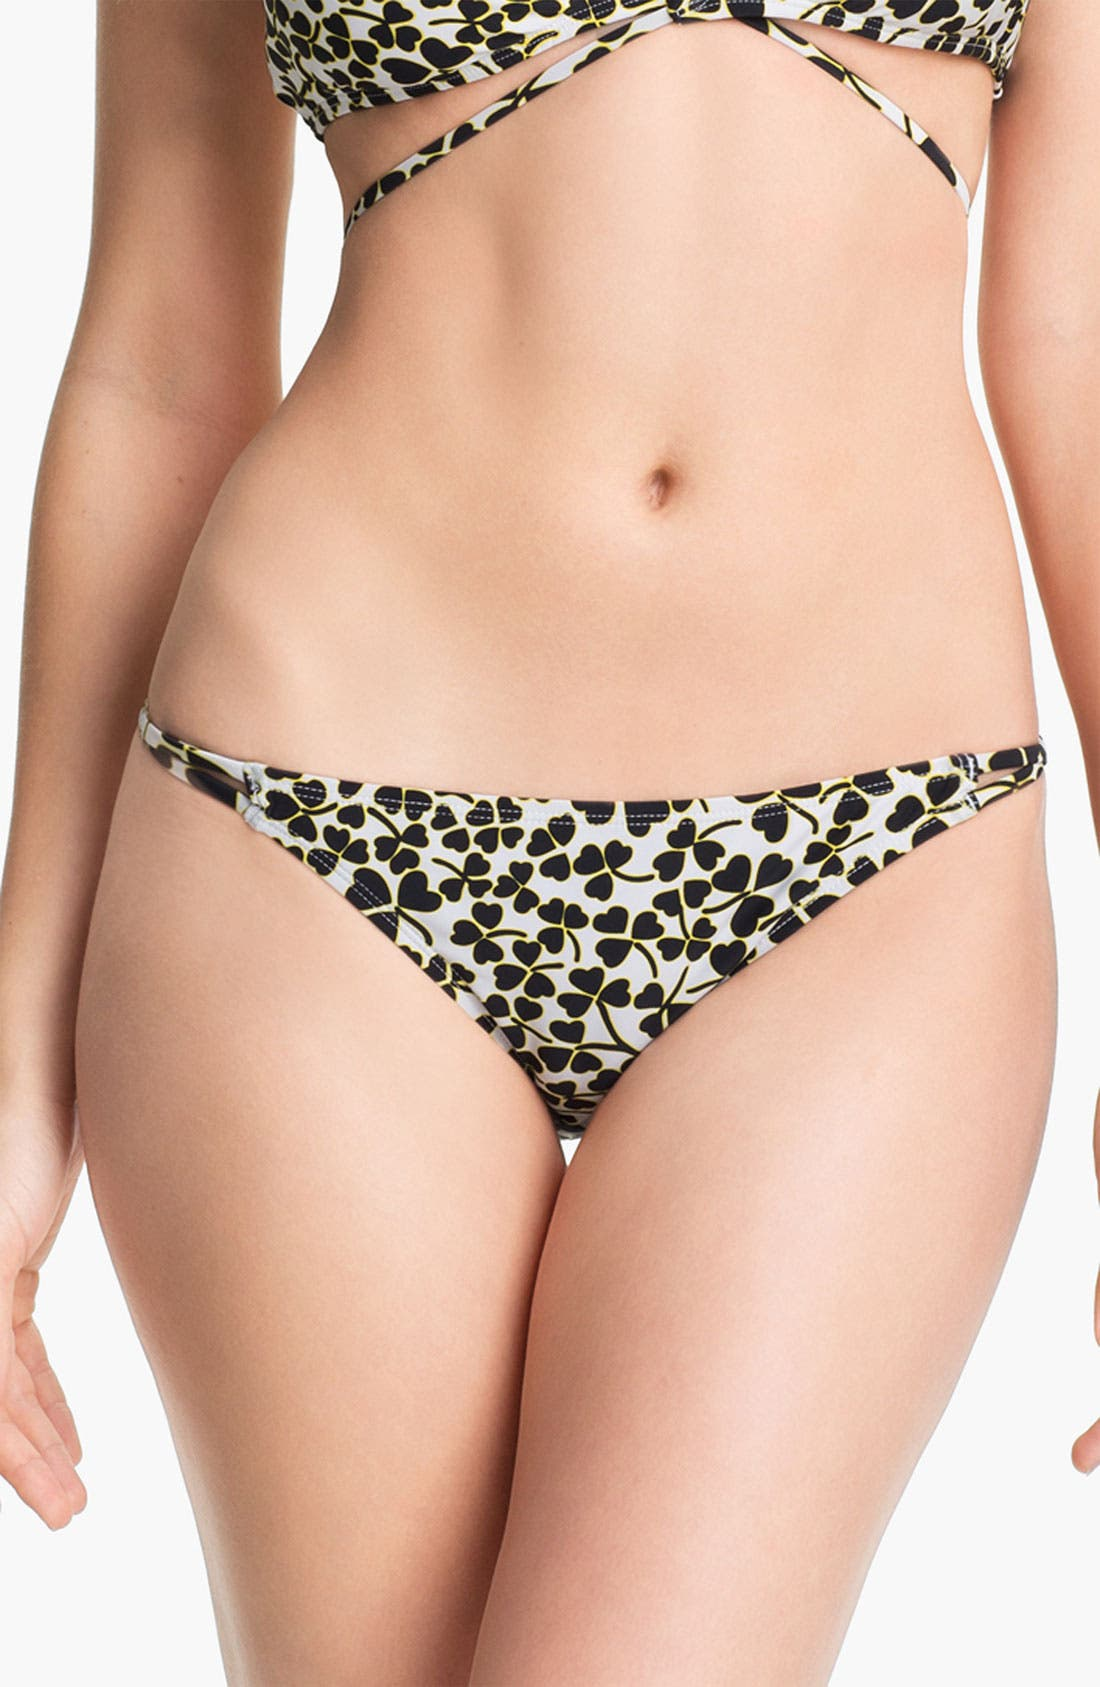 Main Image - 'DVF Loves Roxy - Binded Surfer' Bikini Bottoms